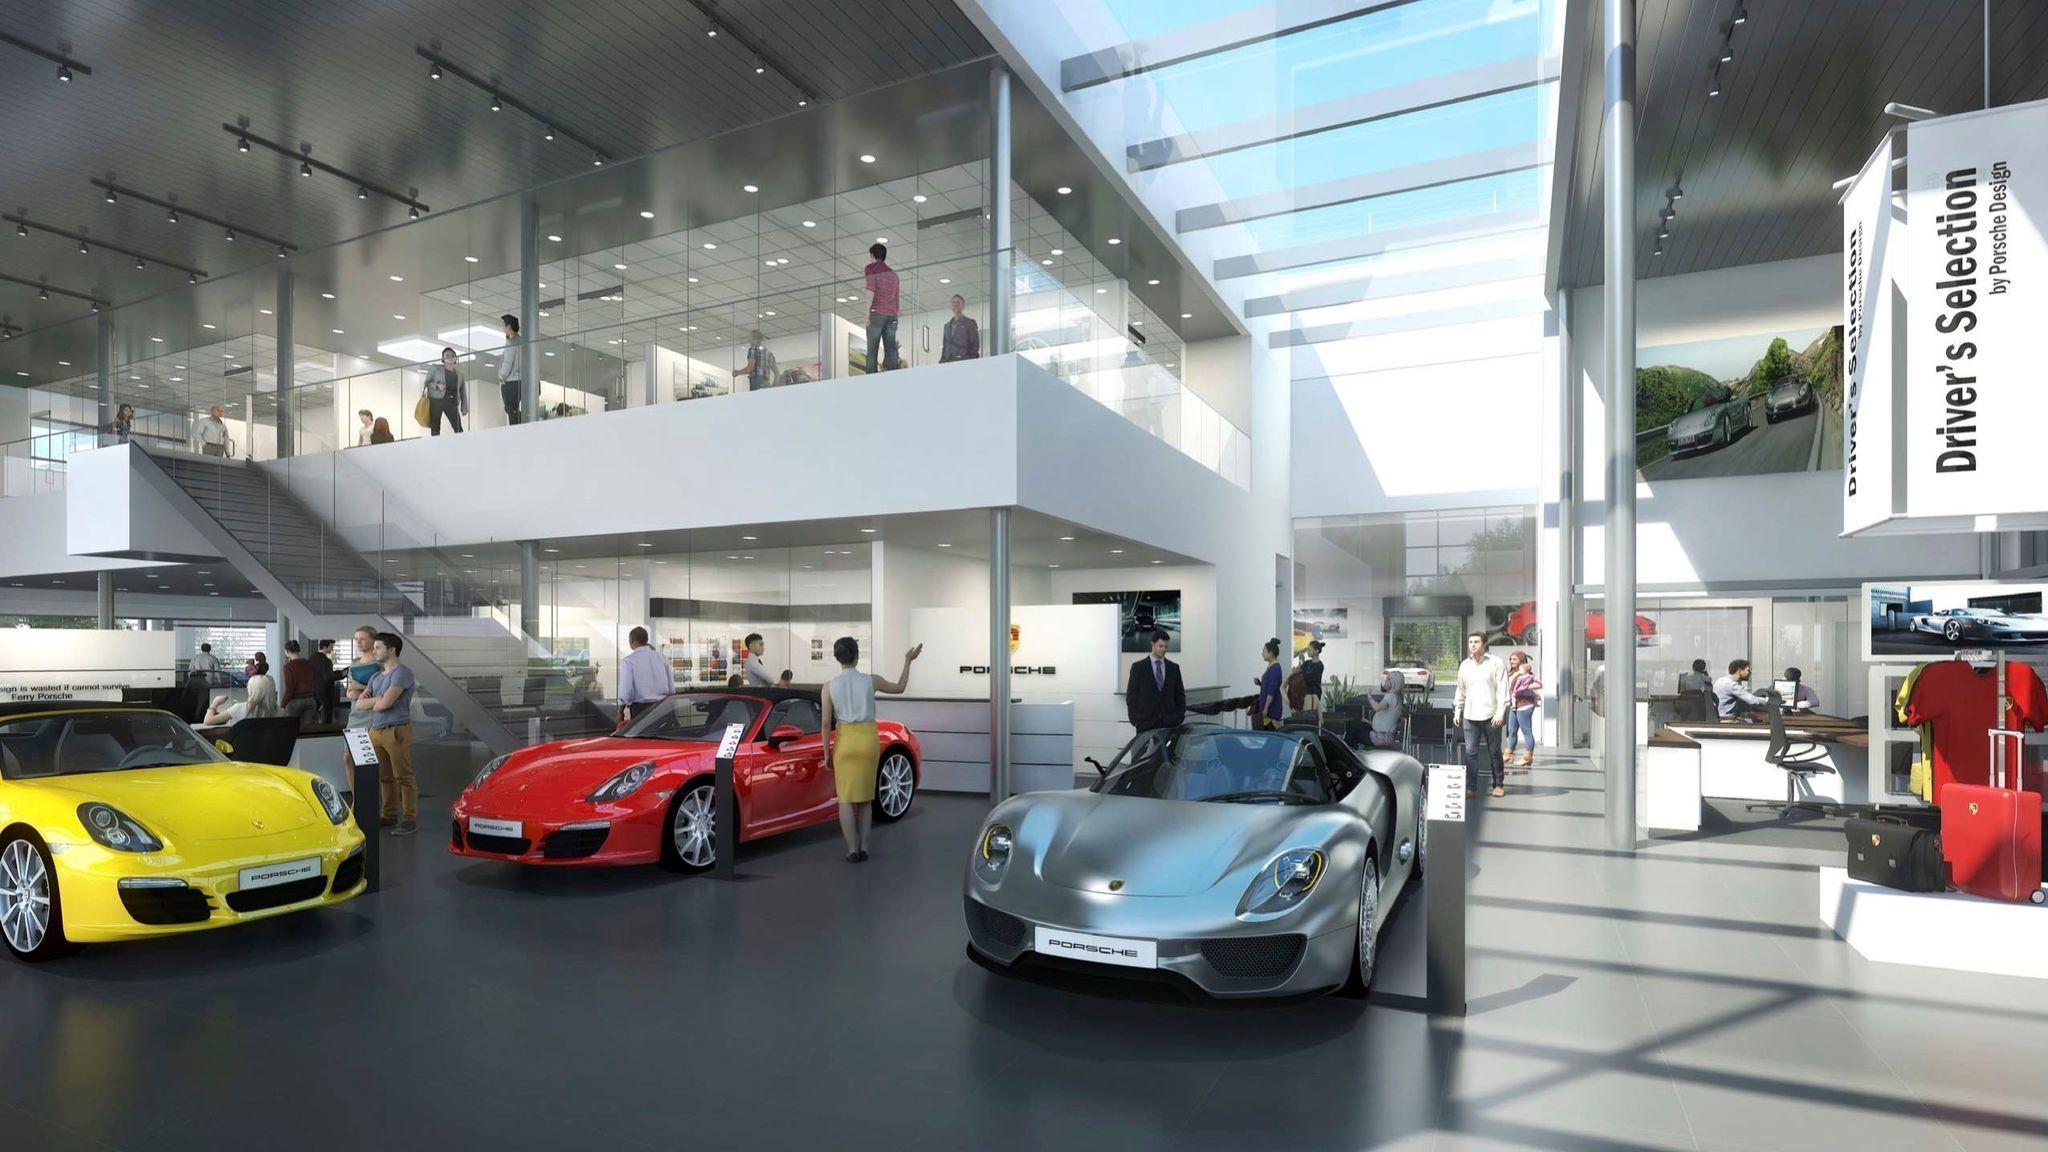 Millenia Clinches Luxury Car Hub With Ferrari Porsche Lexus Chicago Tribune